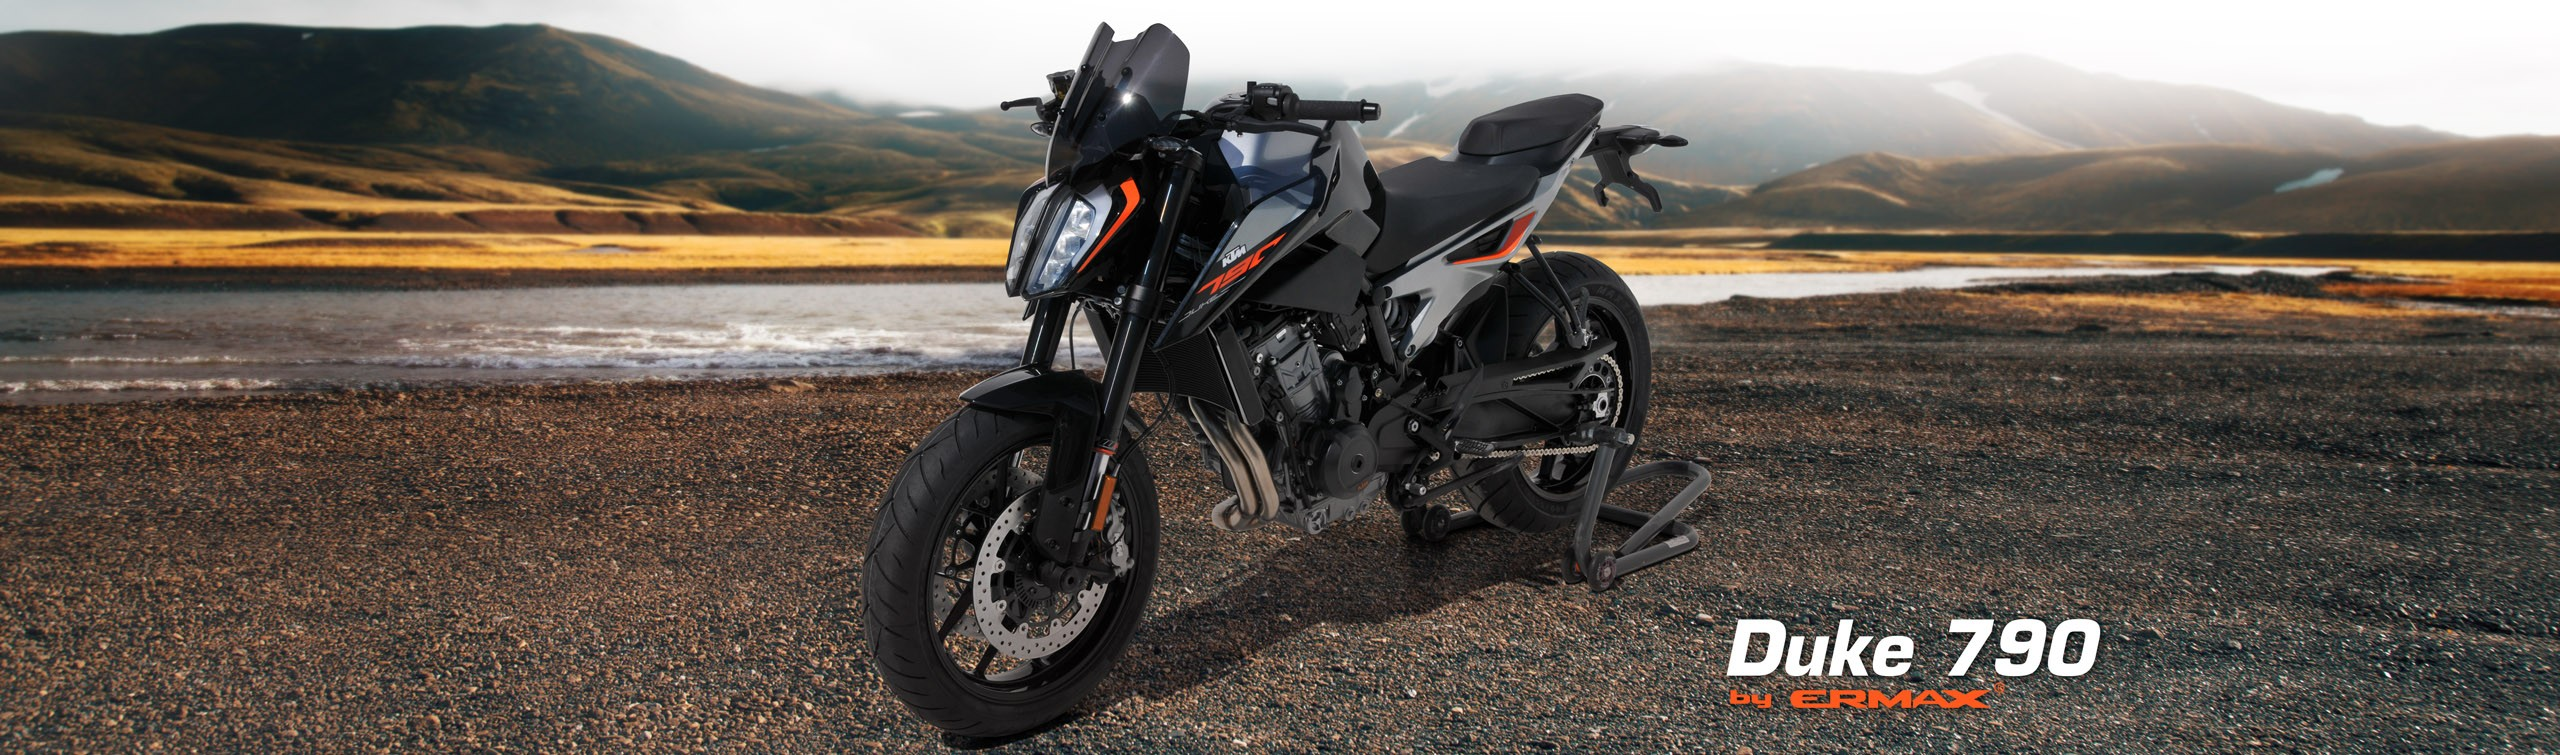 KTM 790 Duke by Ermax